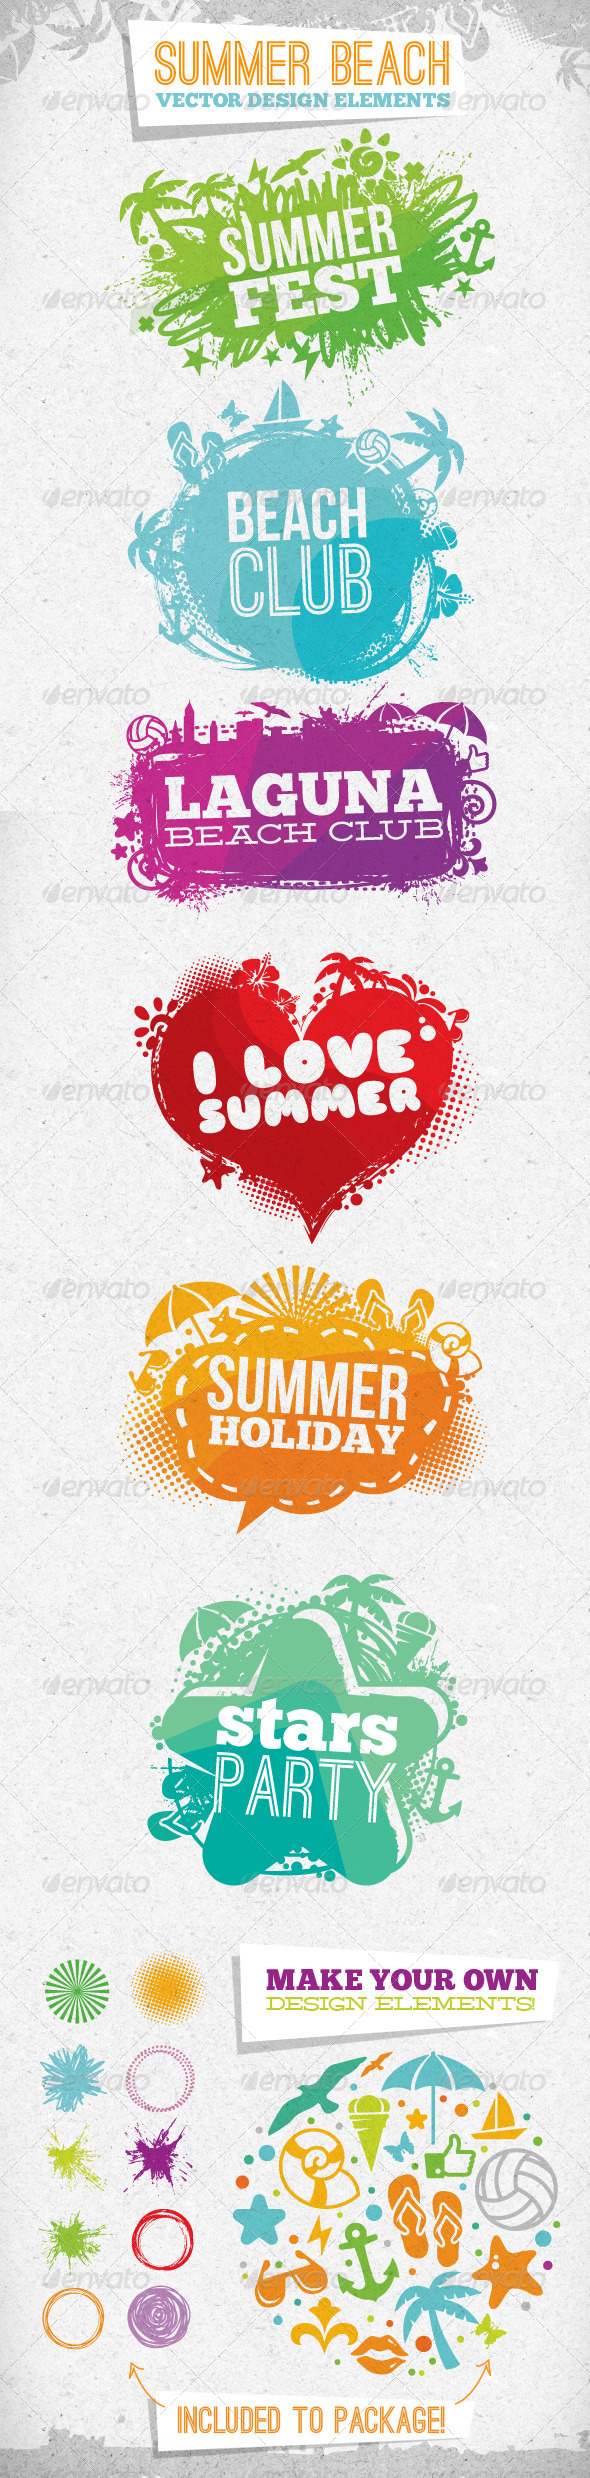 Summer Beach Creative Vector Design Elements - Sports/Activity Conceptual